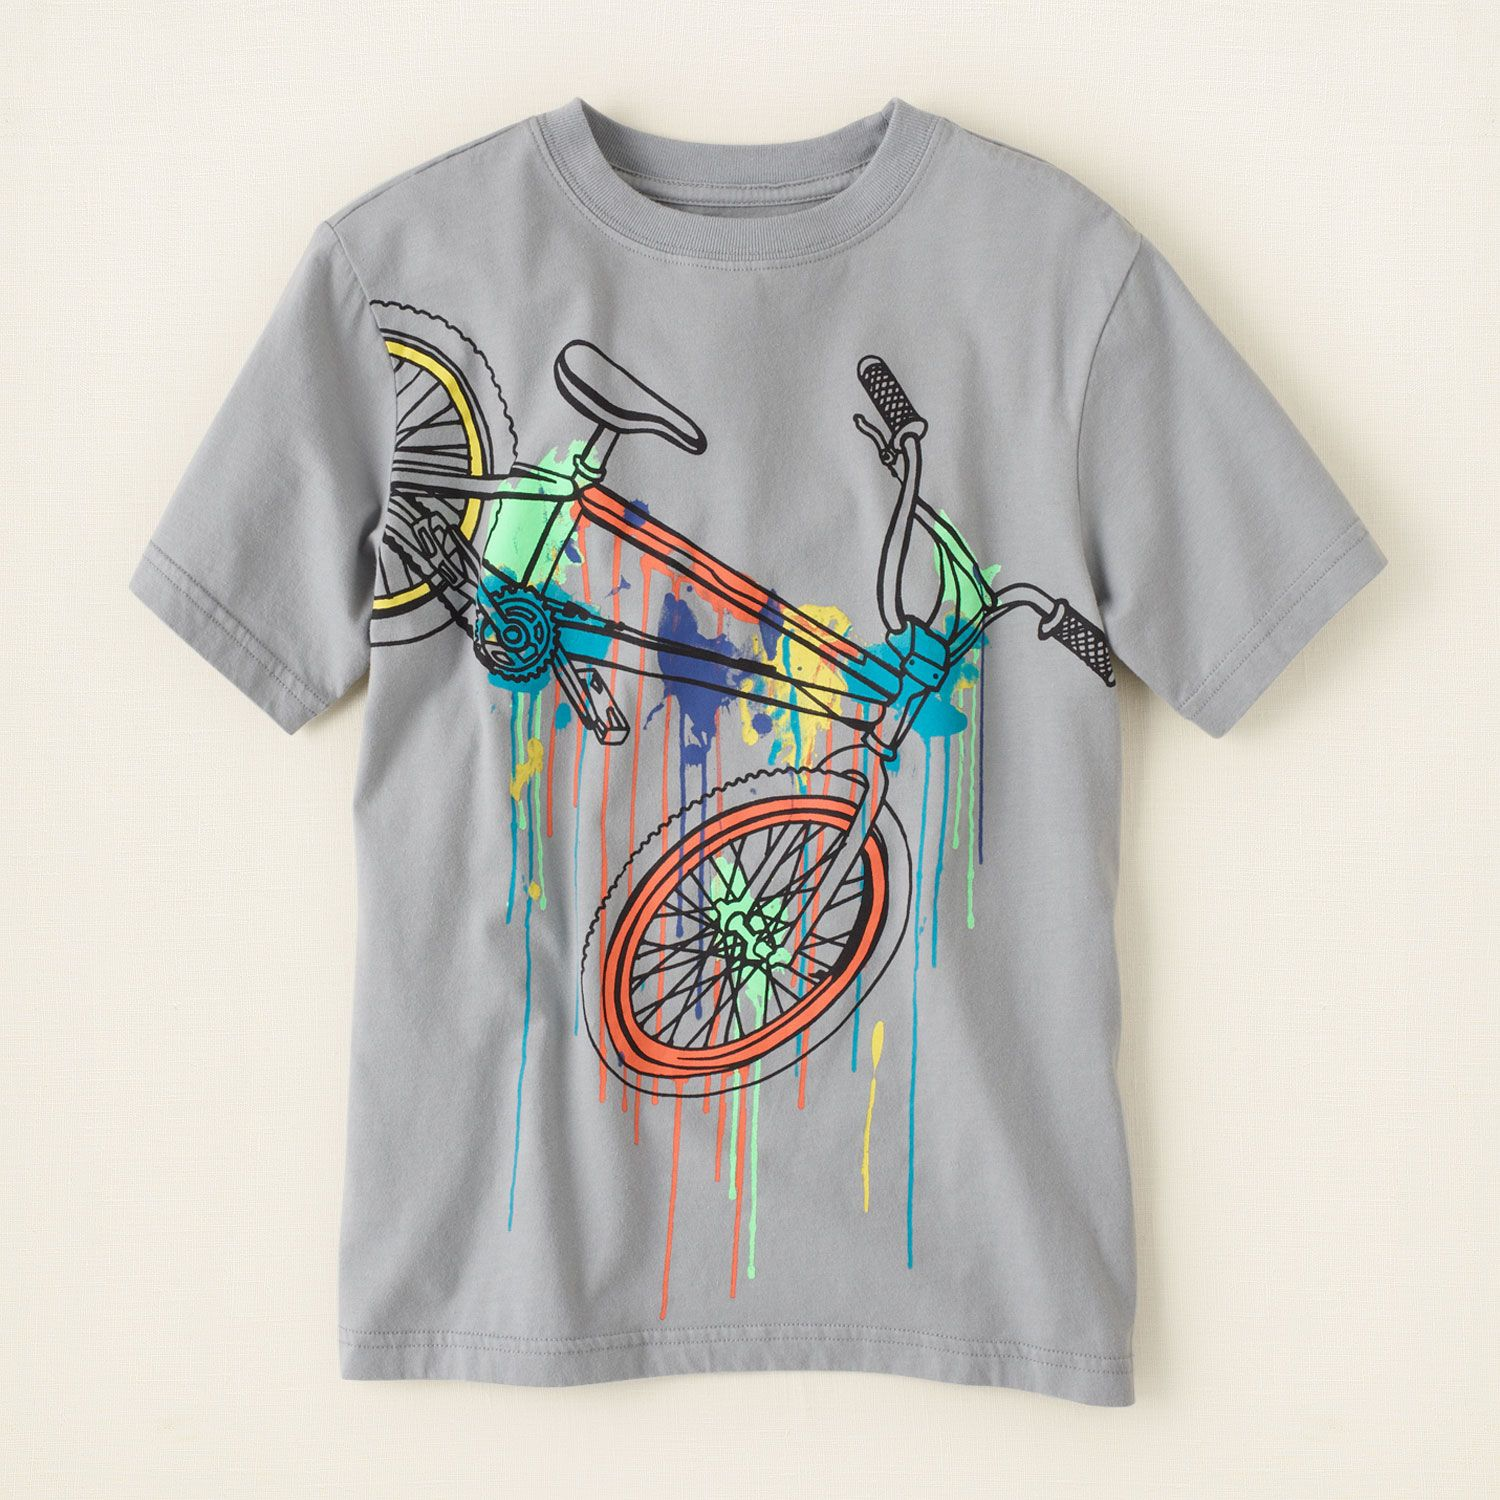 f9dfc18d719c boy - graphic tees - short sleeve - neon bike graphic tee   Children s  Clothing   Kids Clothes   The Children s Place